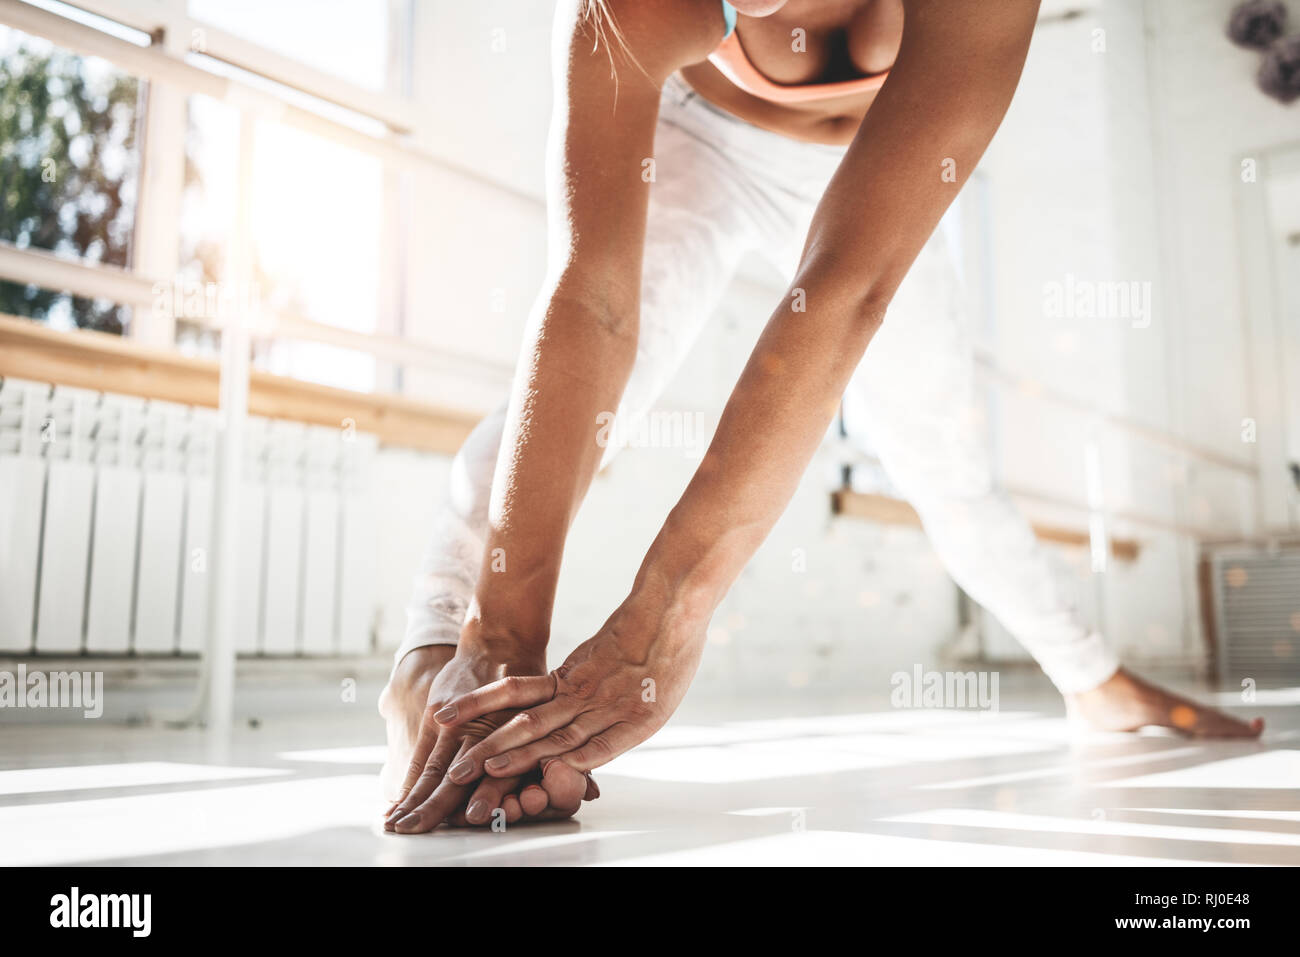 Closeup view on female athlet doing stretching exercises indoor sunny gym - Stock Image